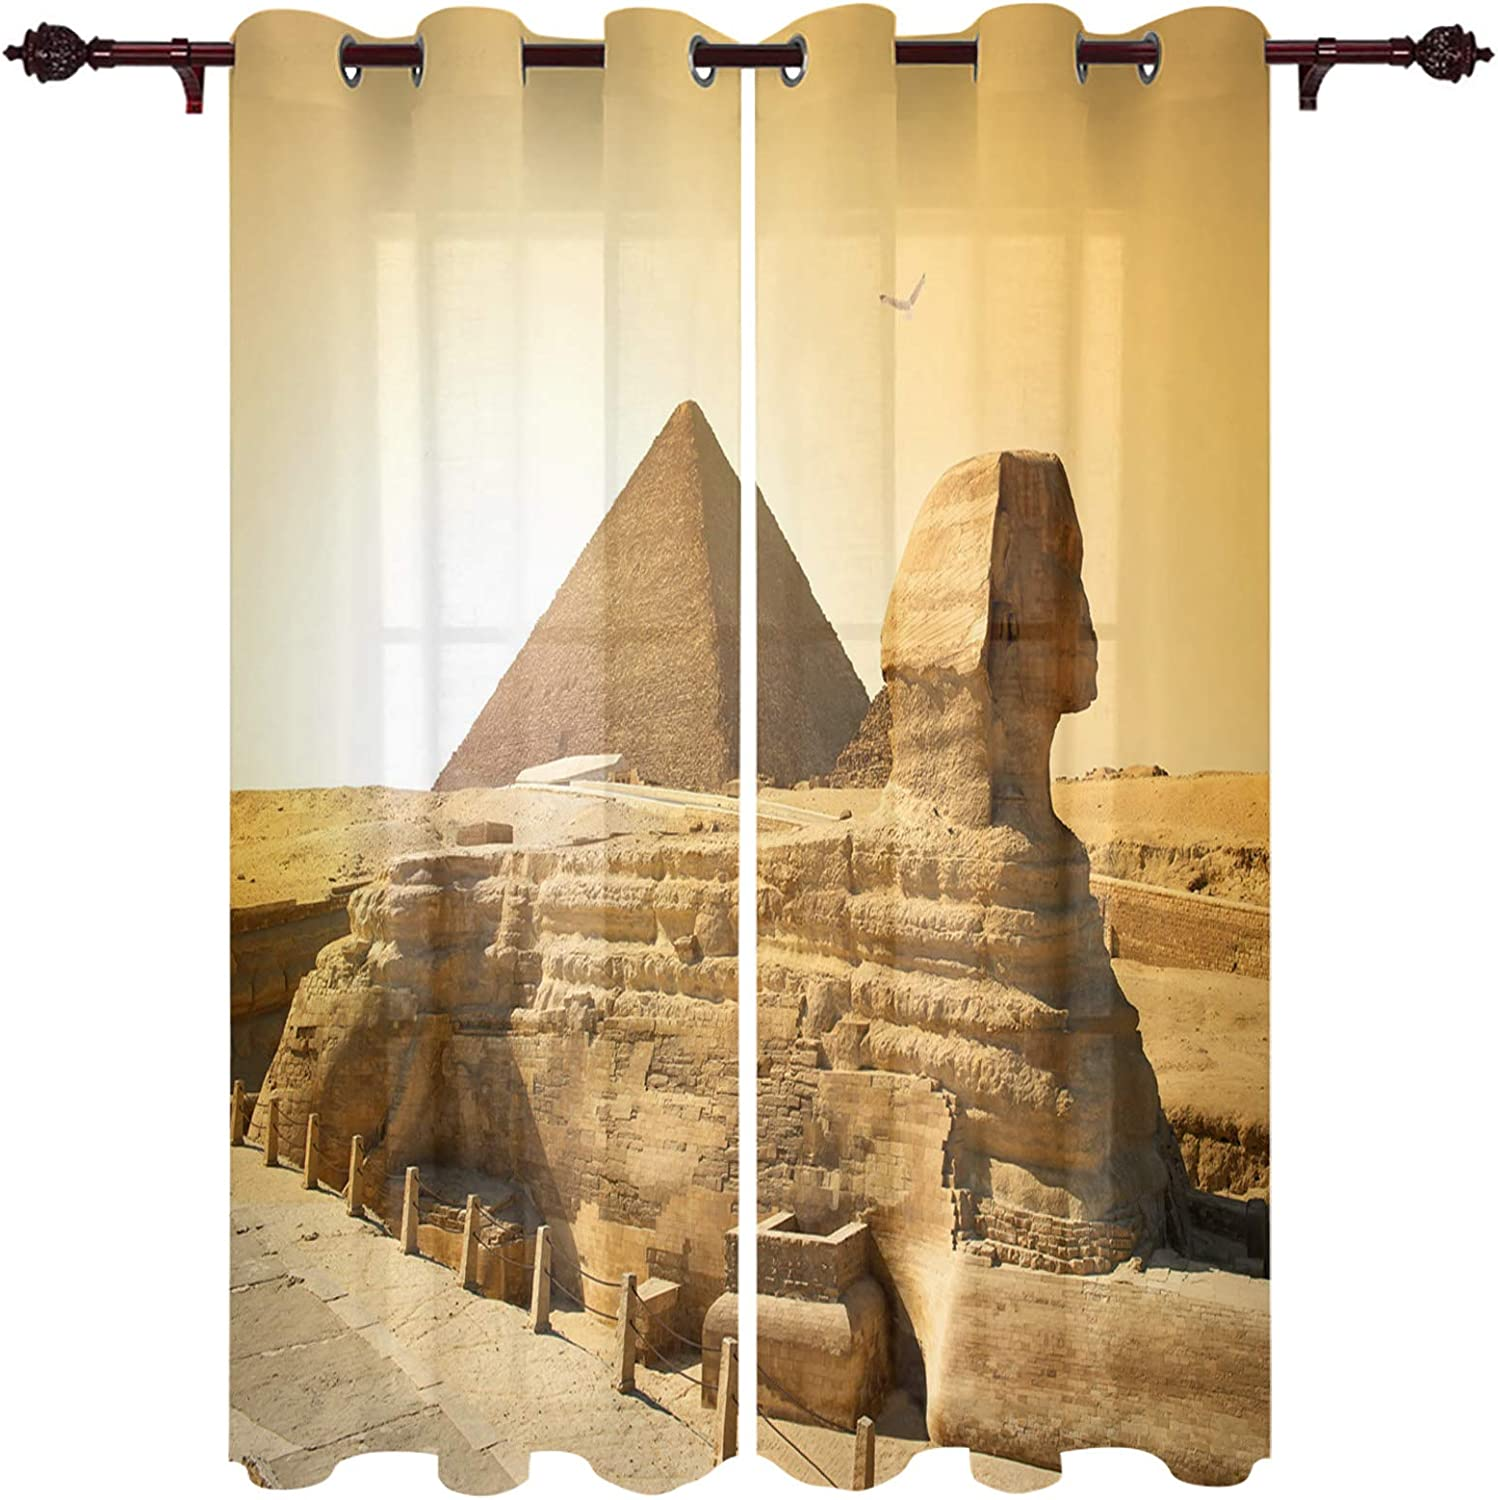 Grommet Top Home Curtain Old Egyptian Pyramids History in Desert with Flying Eagle Bird Window Curtains Pair Drapes for Bedroom, Living Room - Set of 2 Panels, 40